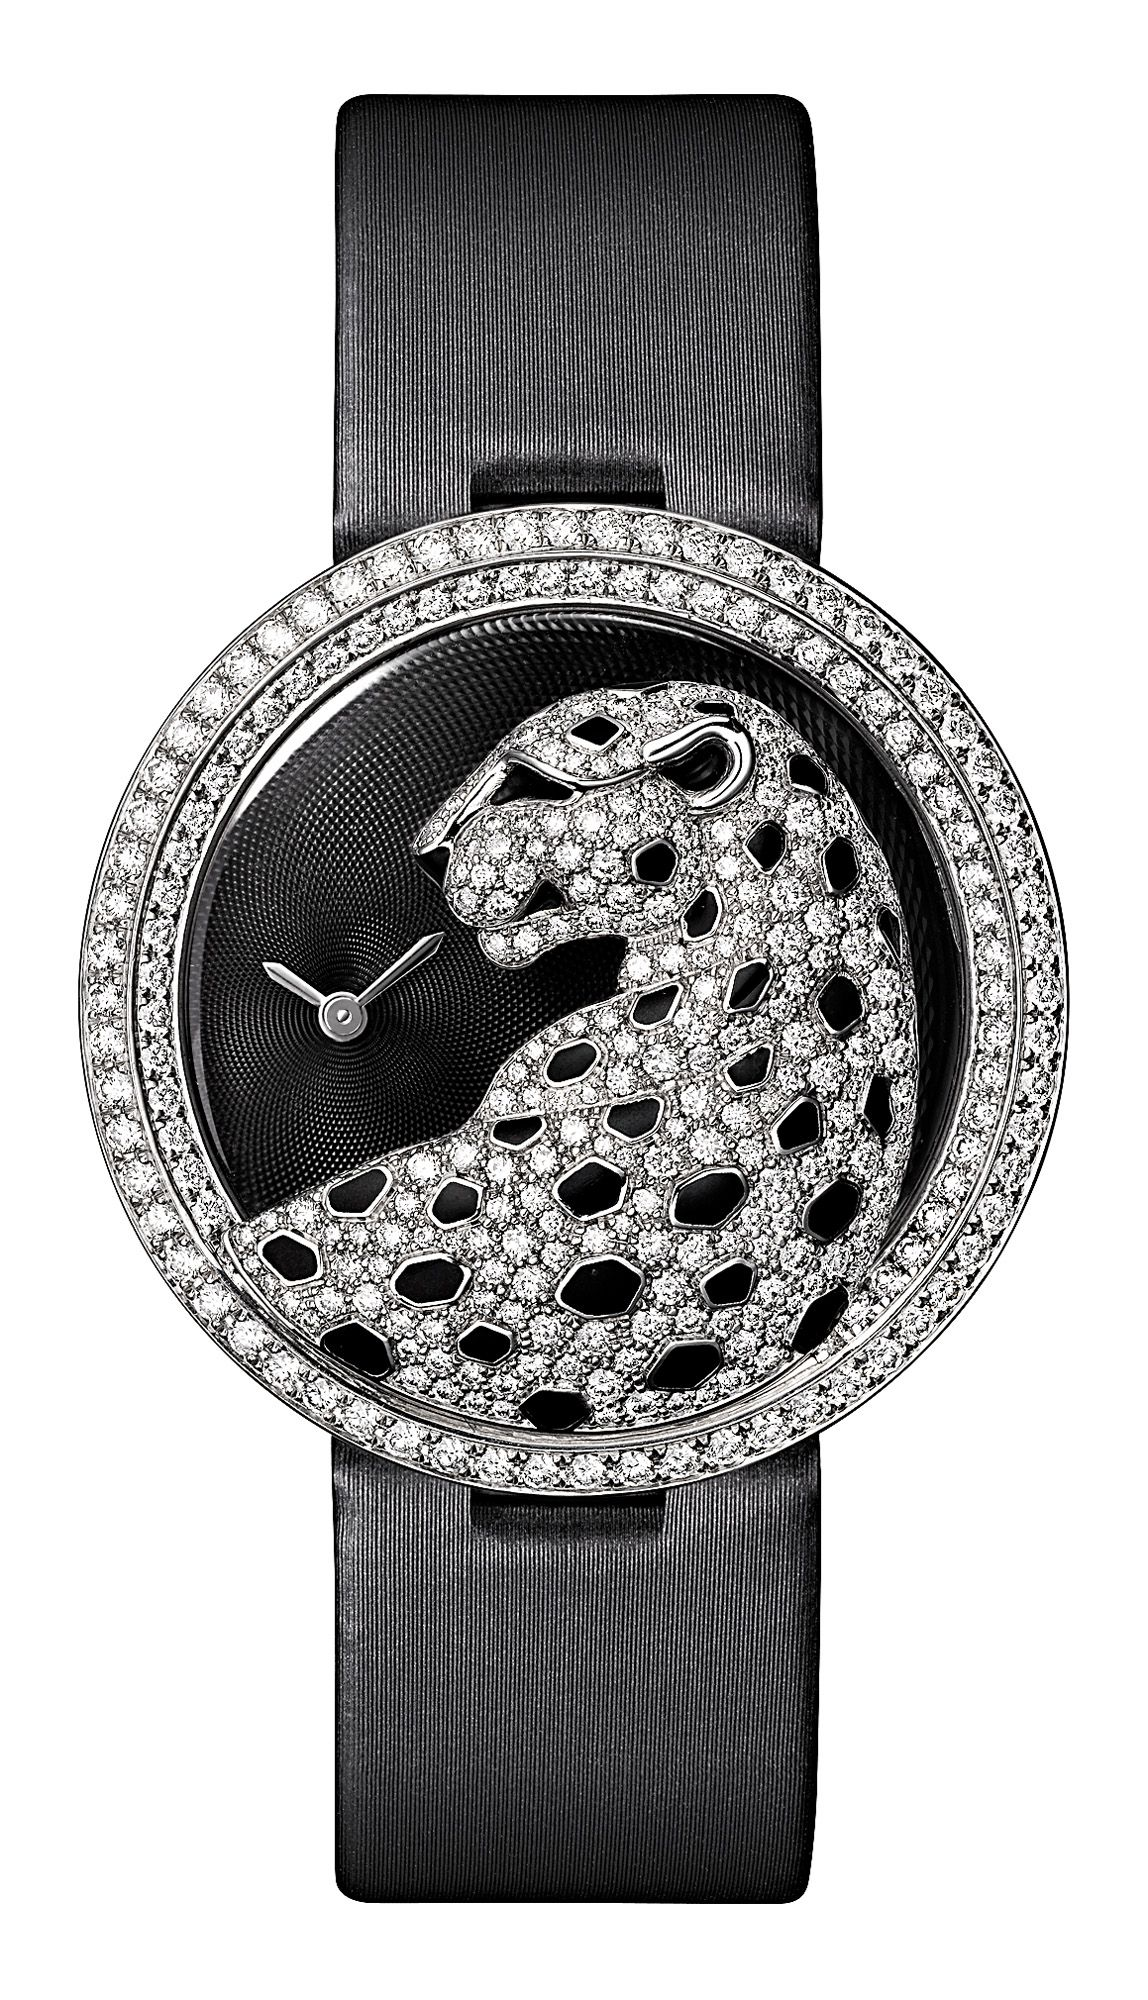 Cartier Panthere Watch brooch diamond panther Pandora Jewelry d3533455543